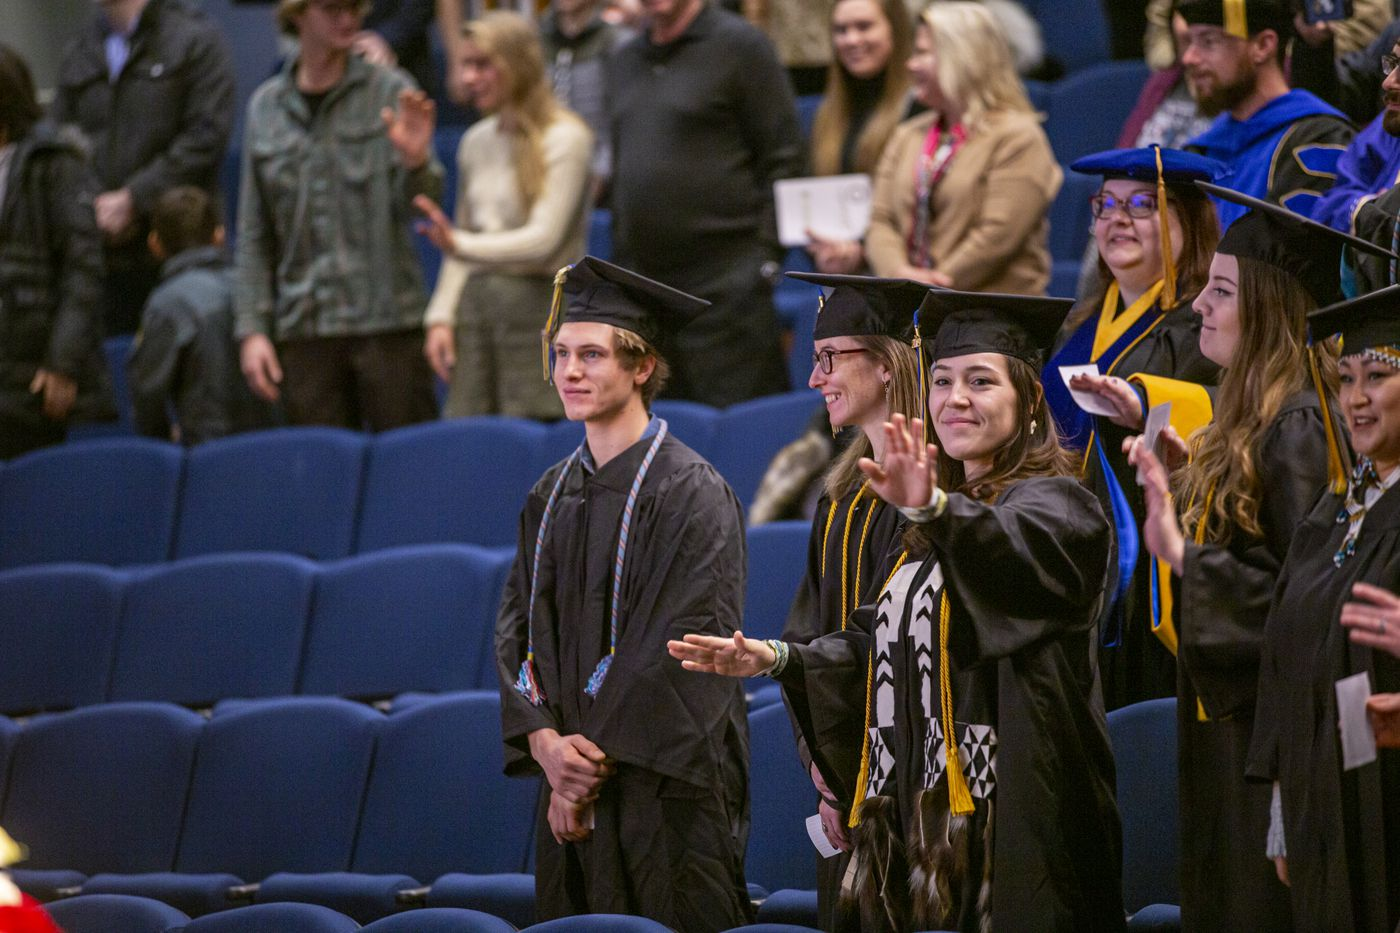 Alaska Pacific University is honored to celebrate the graduation of fall class of 2019, associates, undergrad, grad and doctorate earners. The celebration was held at the Wendy Williamson Auditorium on the campus of the University of Alaska, Anchorage on December 14th, 2019. (Ted Kincaid/Alaska Pacific University)